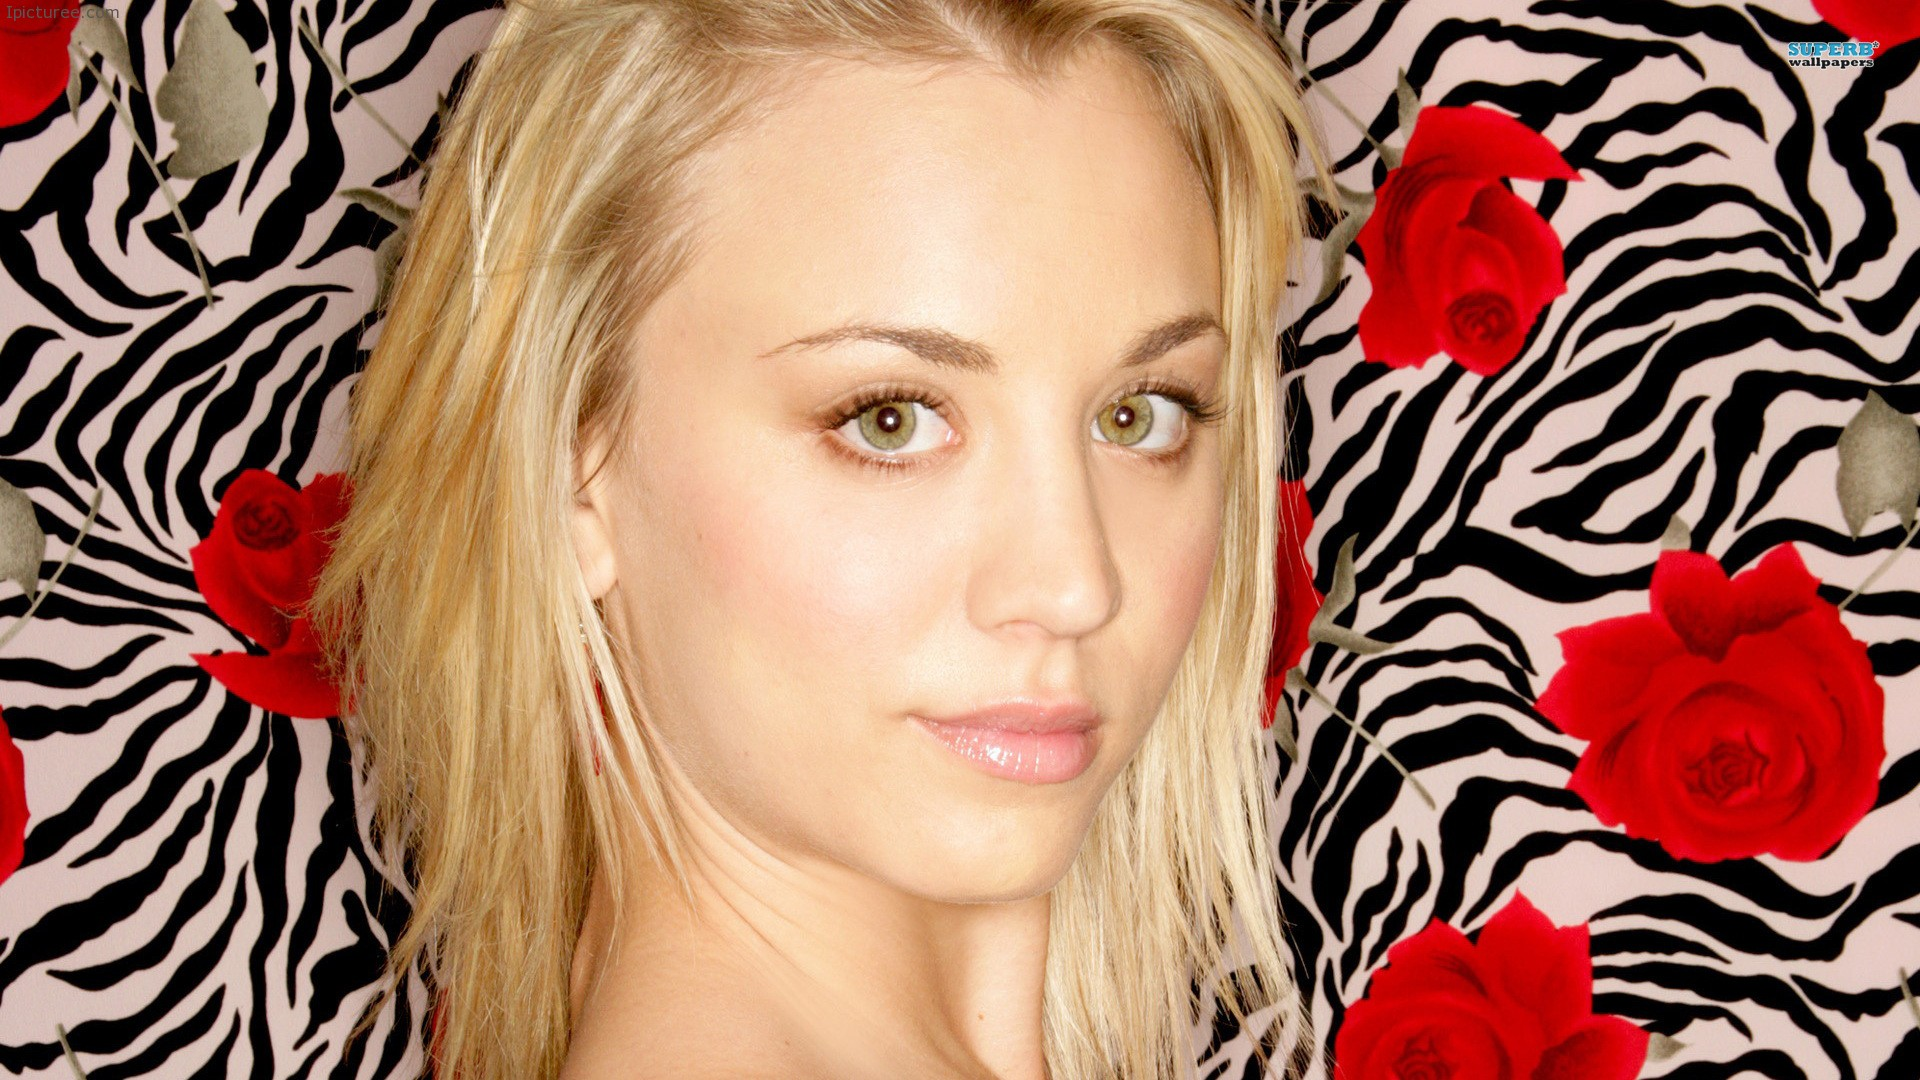 Kaley Cuoco wallpaper 1920×1080